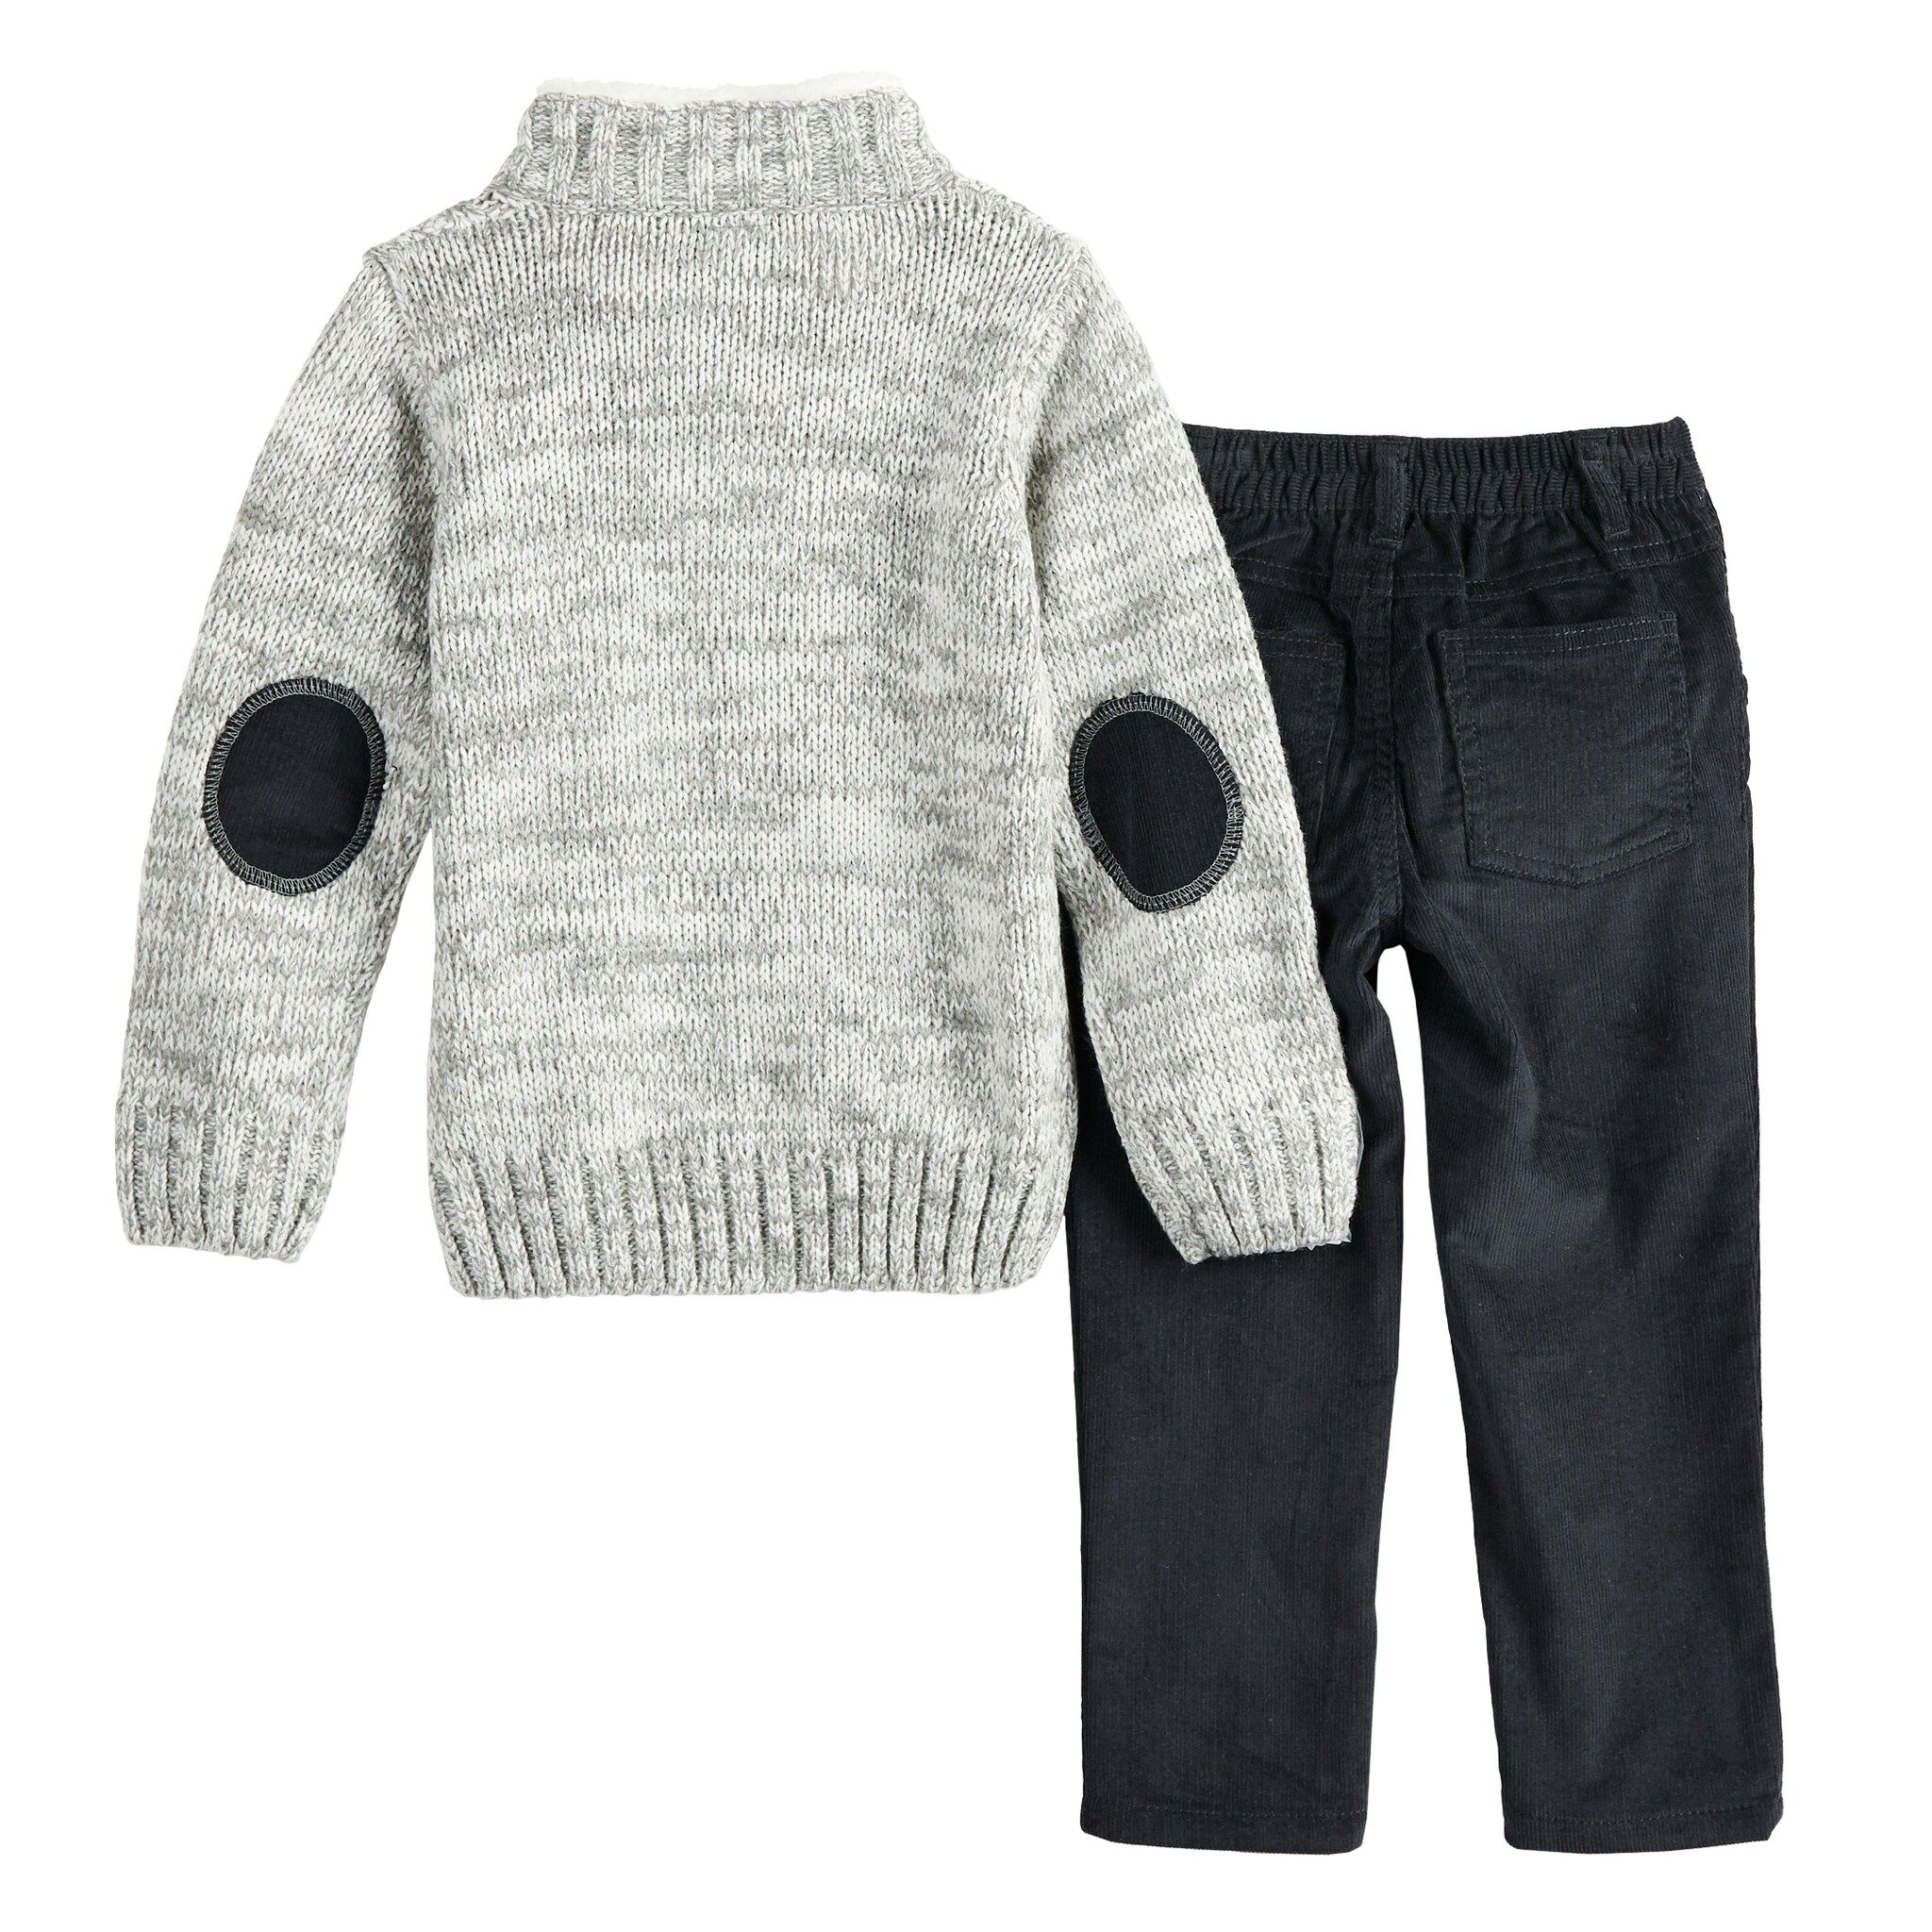 Photo of Baby Boy Little Lad Cable Knit Sweater & Corduroy Pants Set